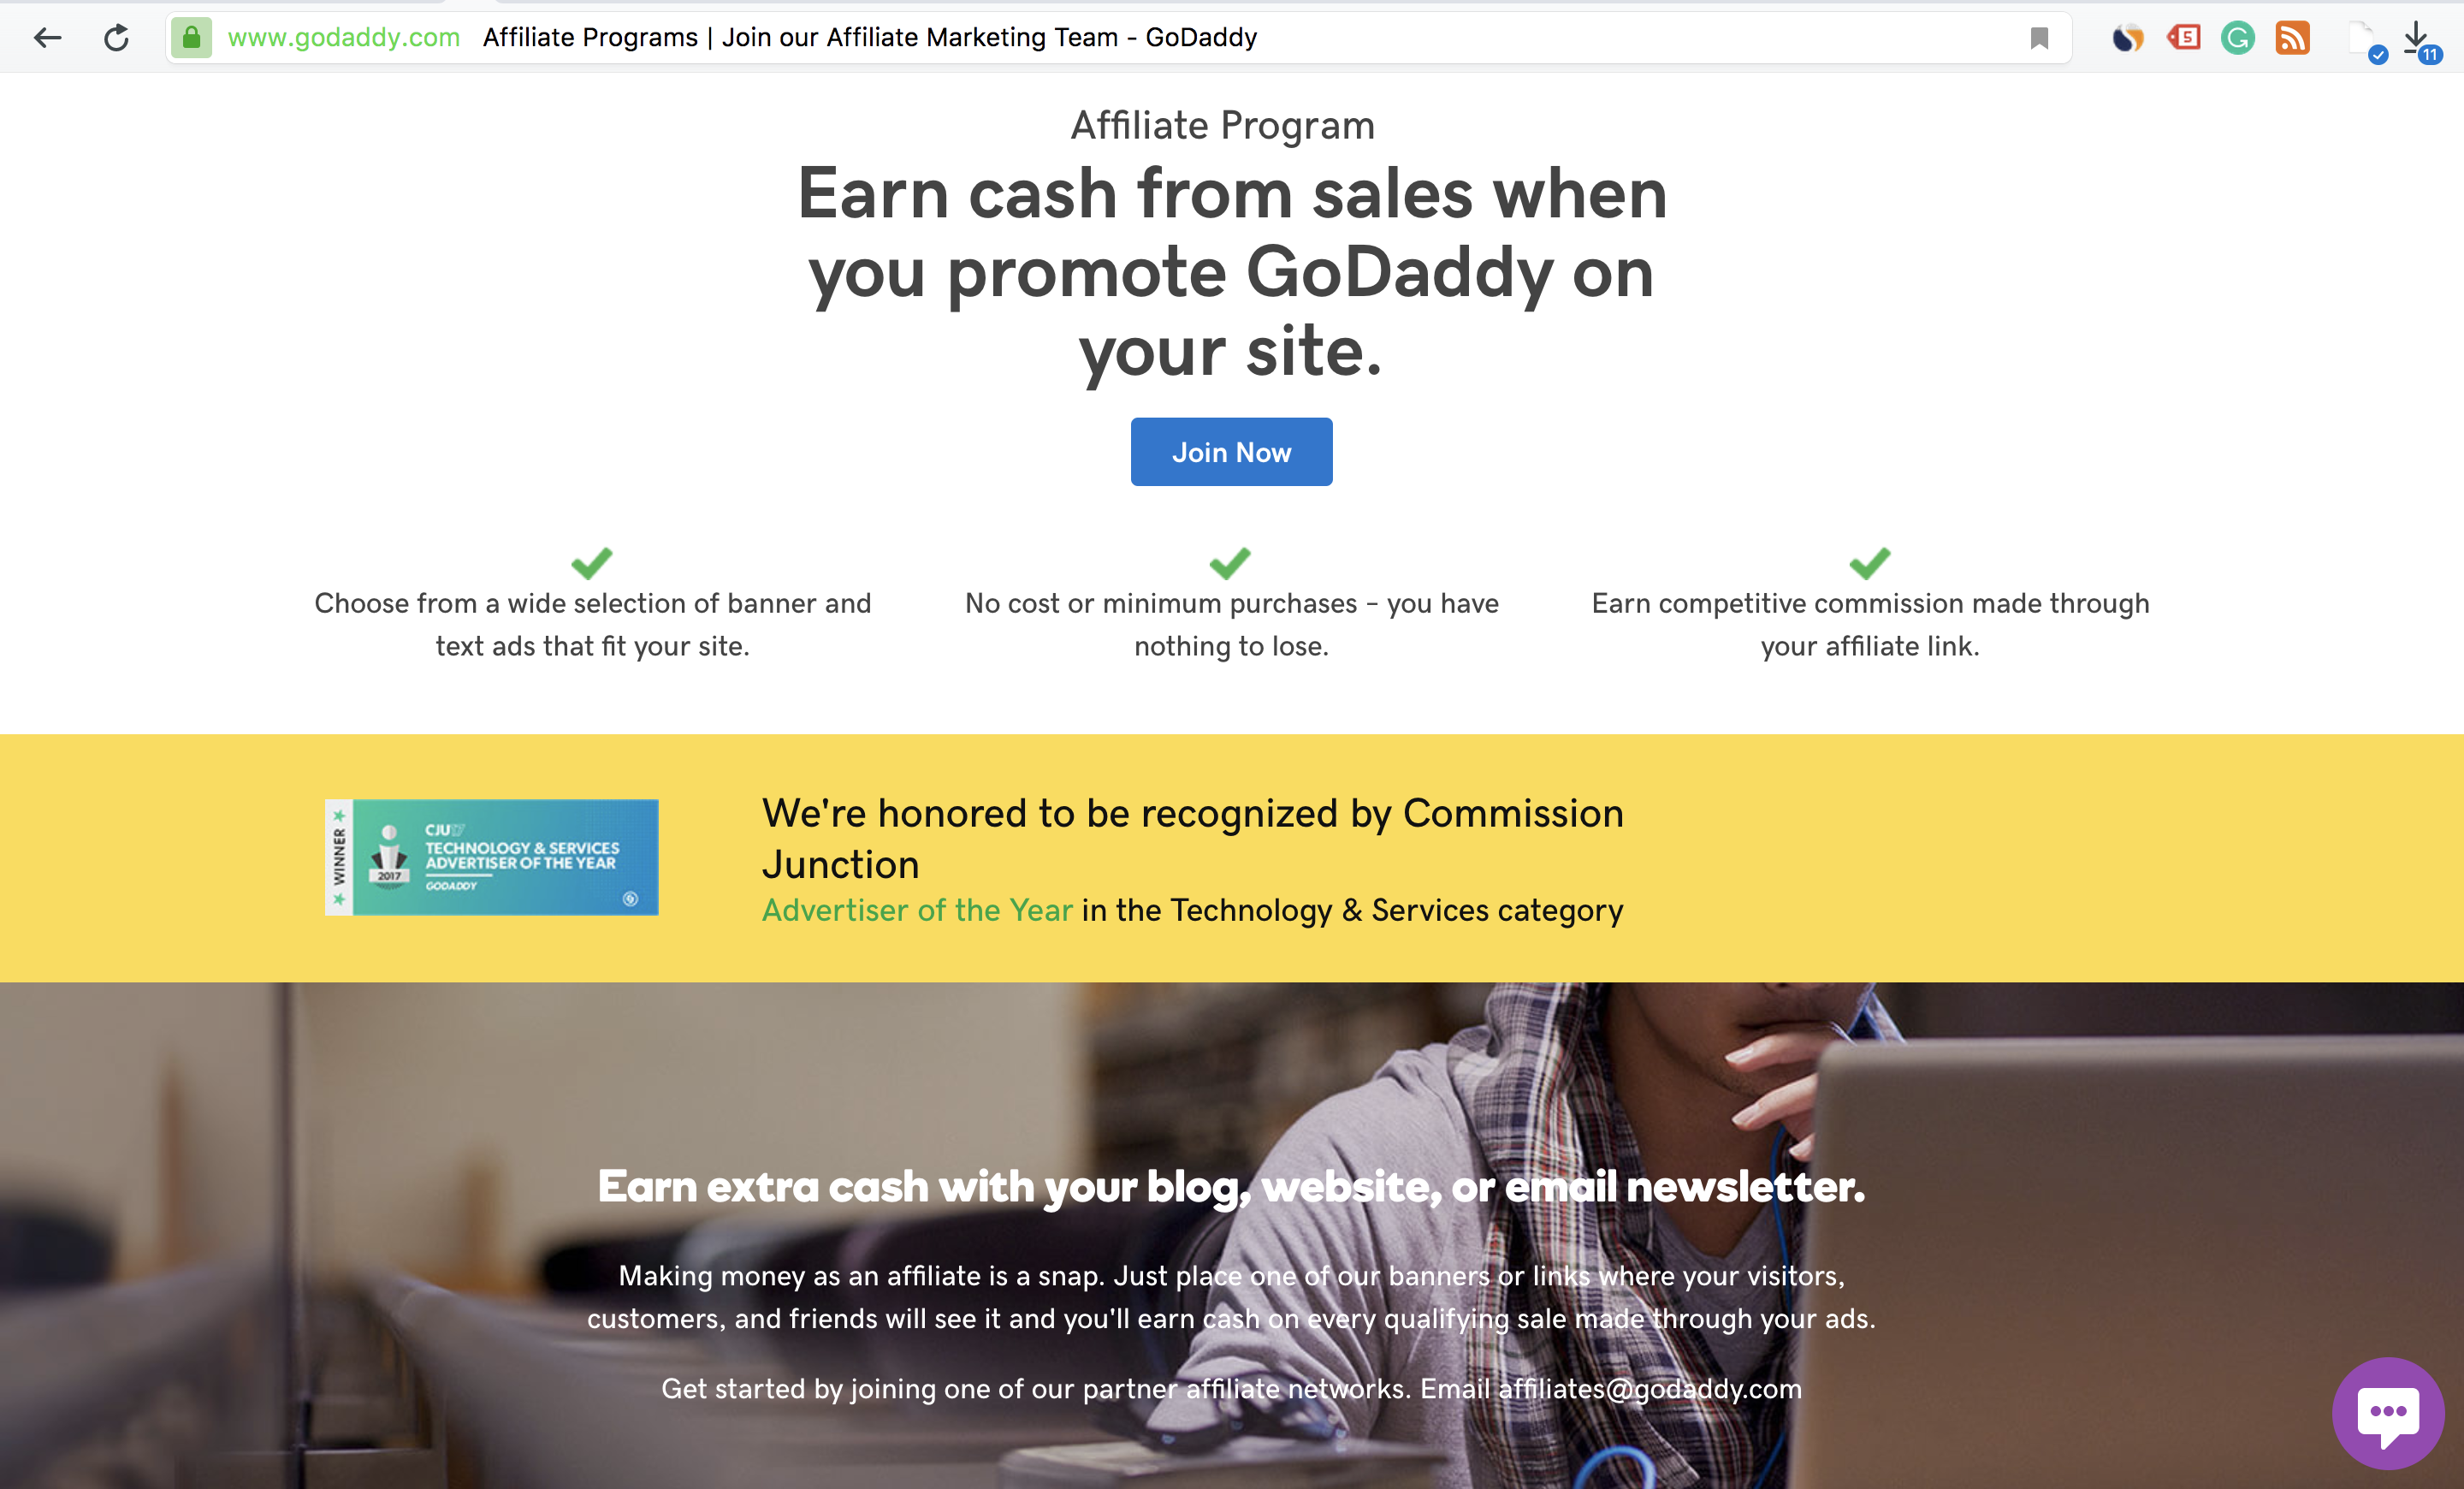 GoDaddy's Affiliate Sneak Peek